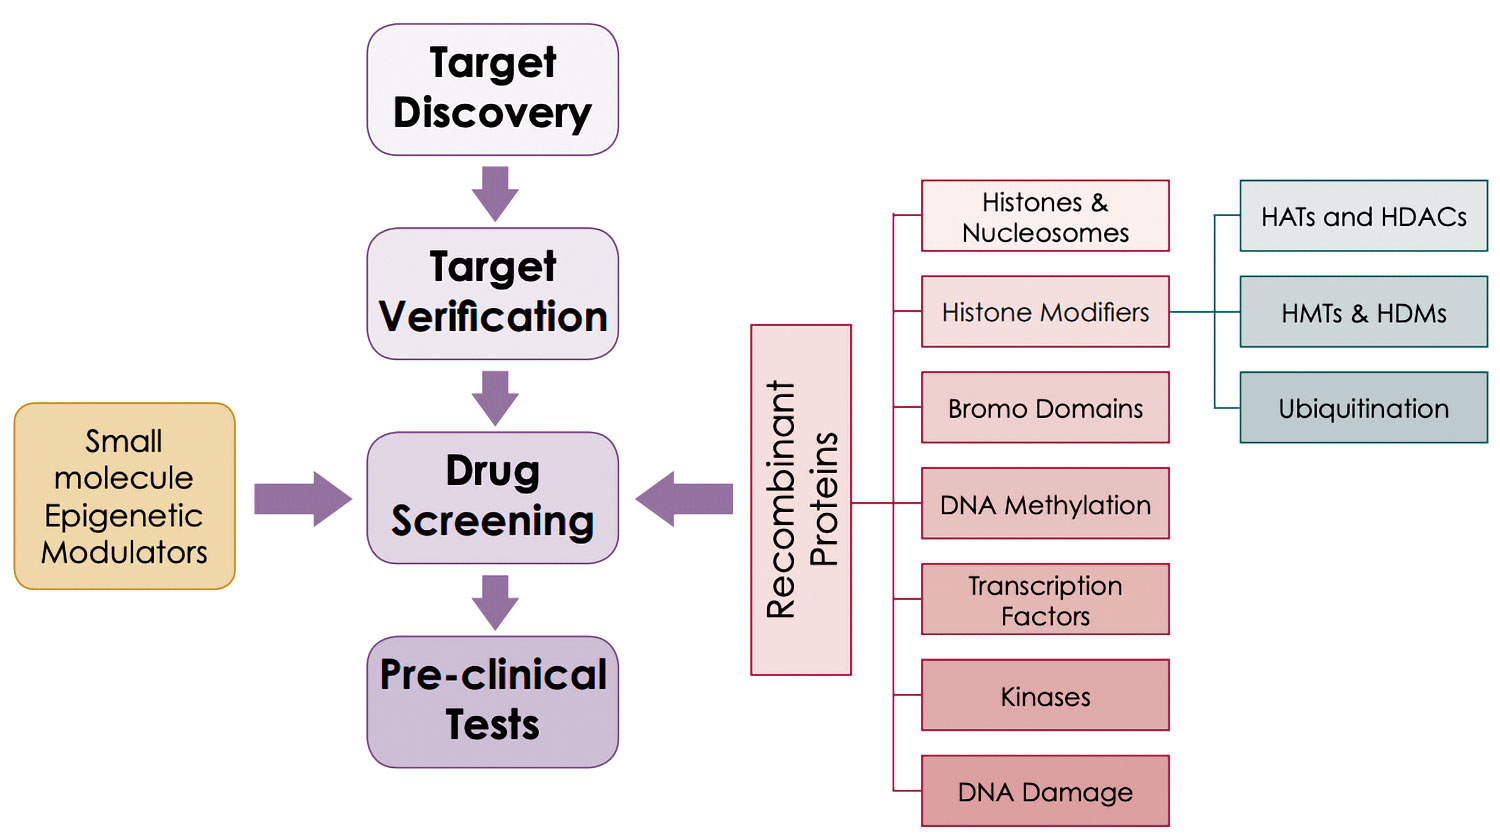 Figure 1. Overview of the drug discovery and development workflow